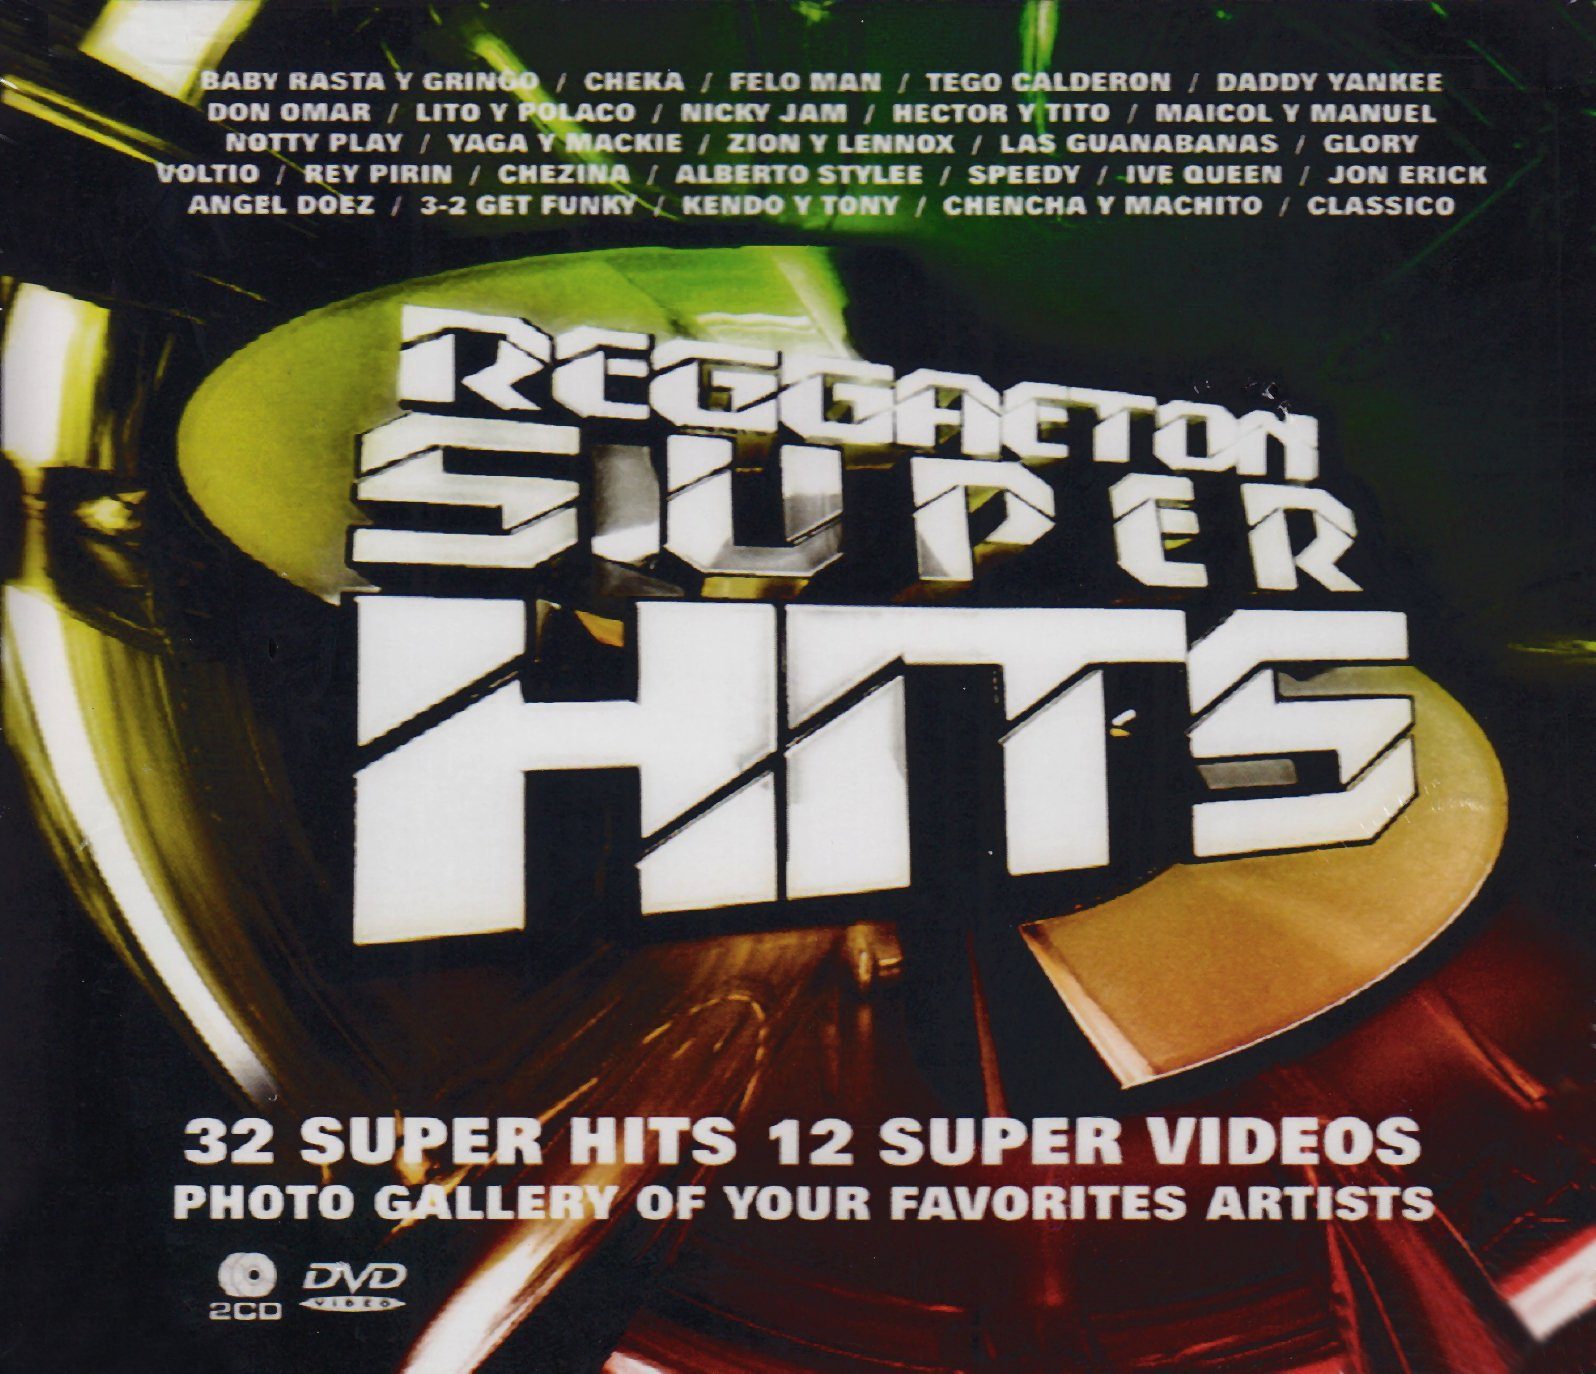 Reggaeton Super Hits by Universal Latino